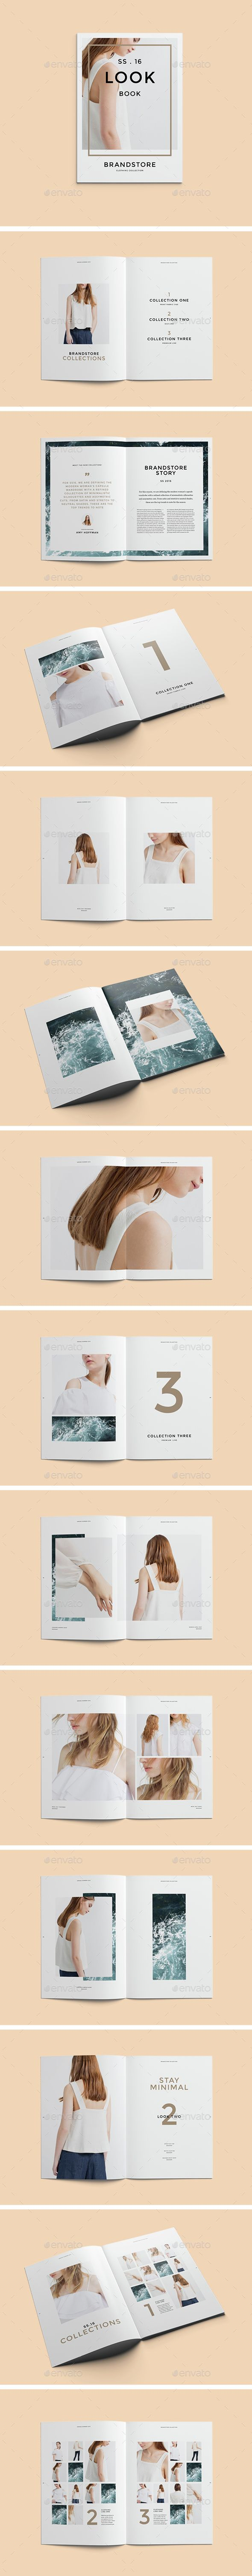 Fashion Lookbook #a4 #brandbook #fashion #fashion boutique #fashion brand